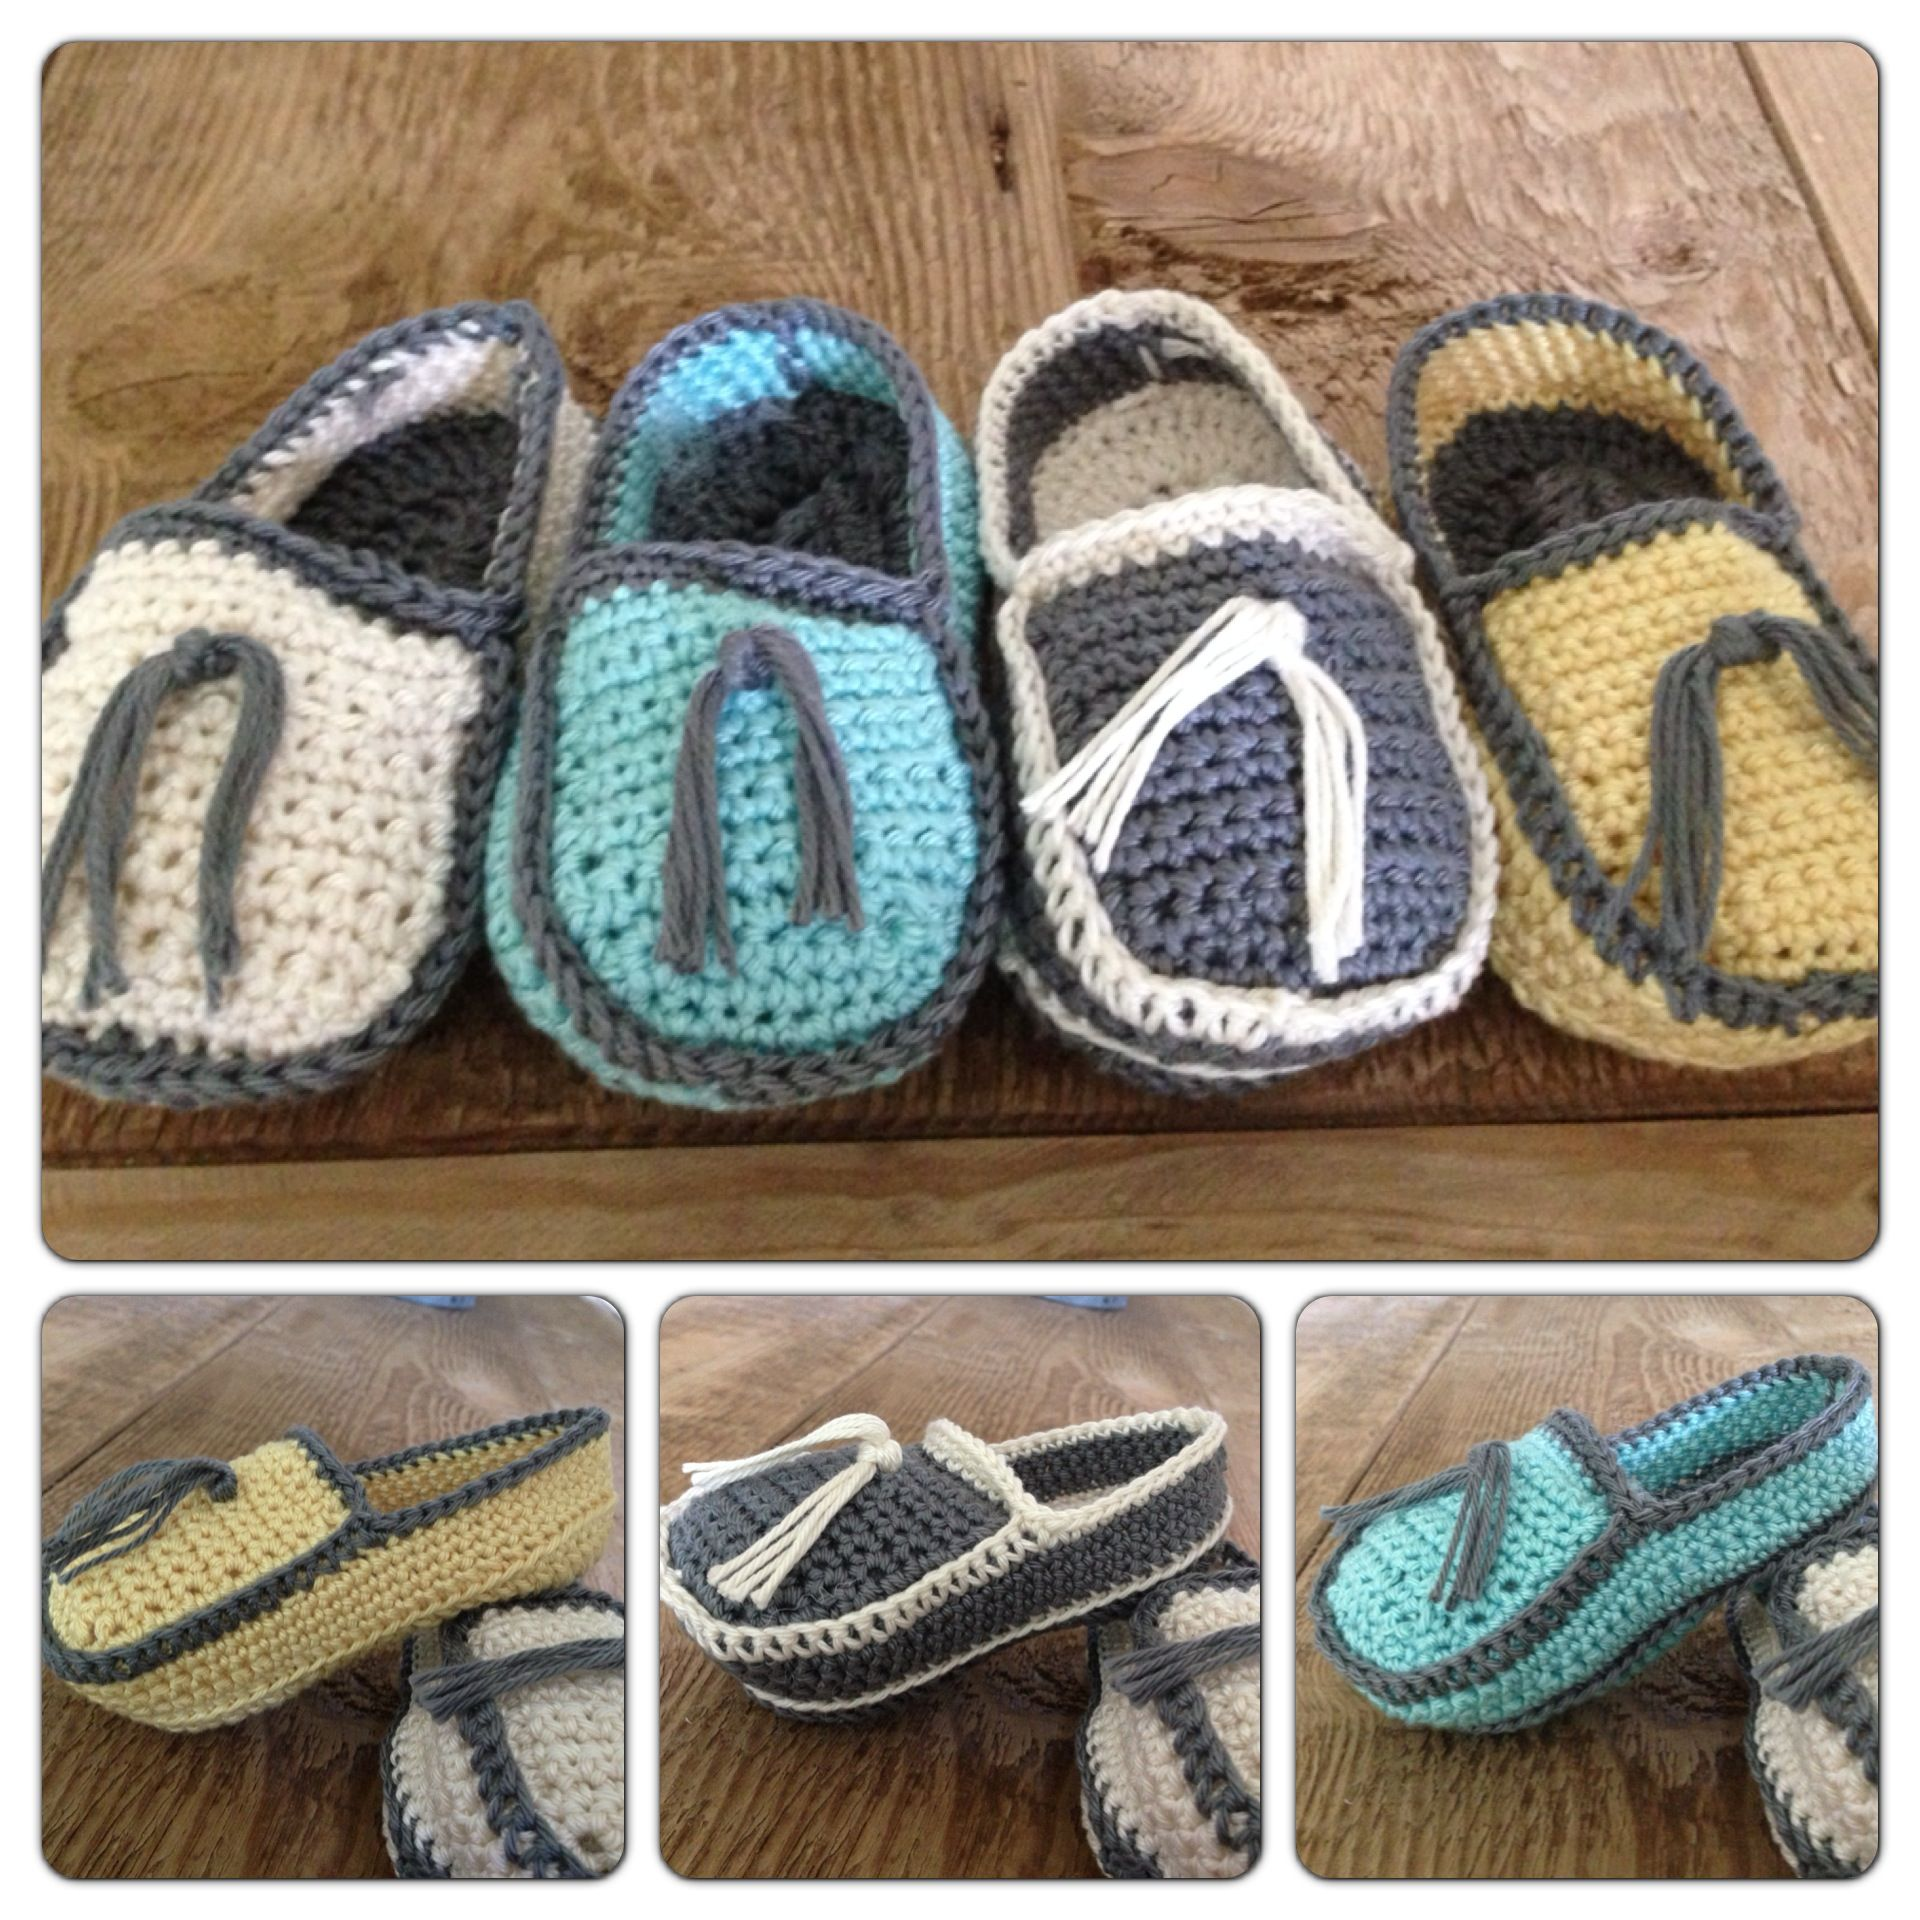 Baby Loafers Free Tutorial | Free Annoo Crochet Designs Patterns ...